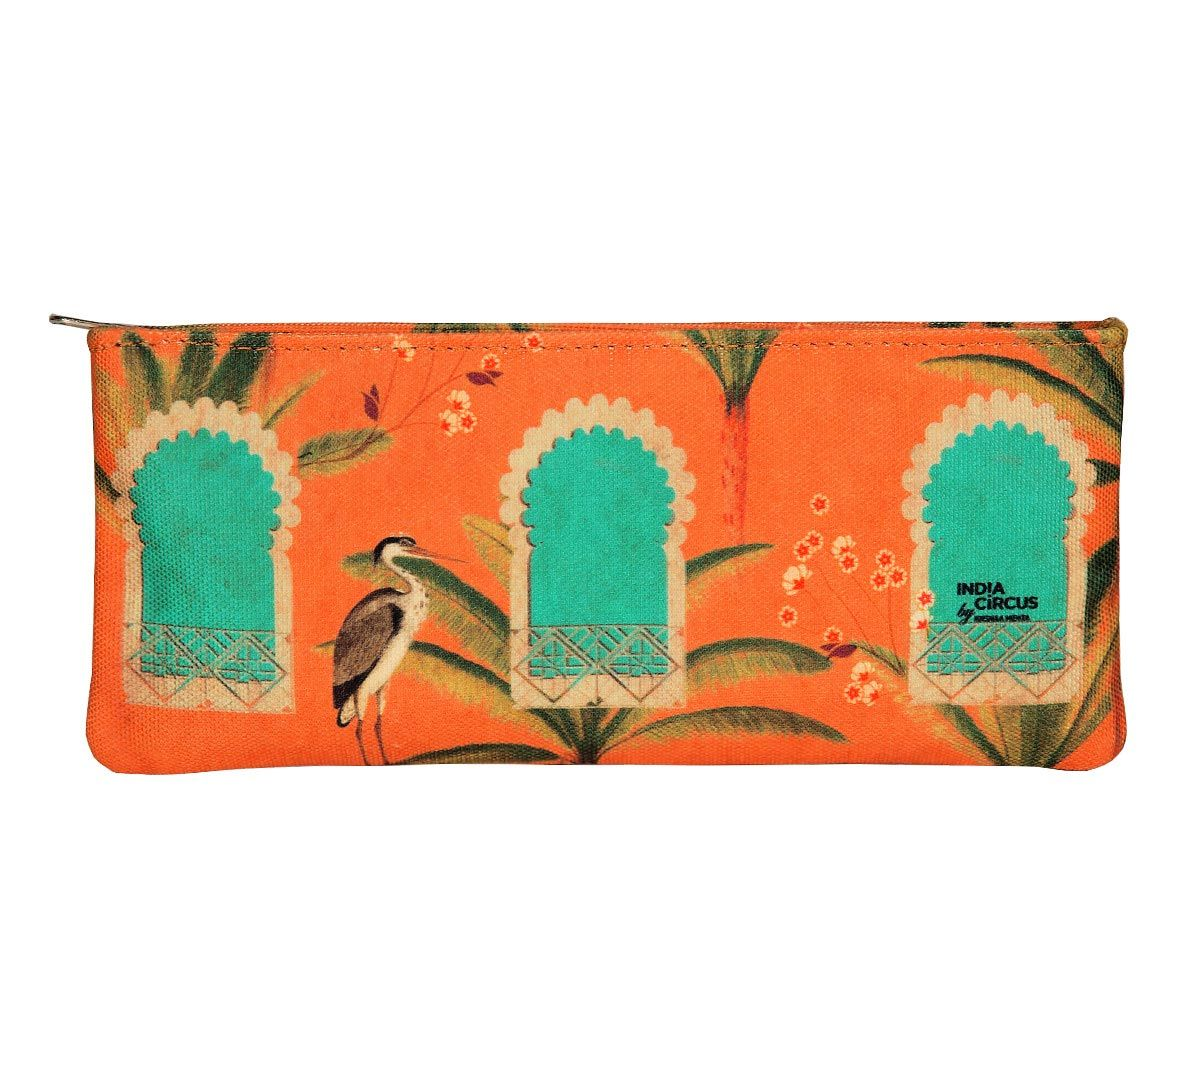 India Circus Heron's Palace Small Utility Pouch